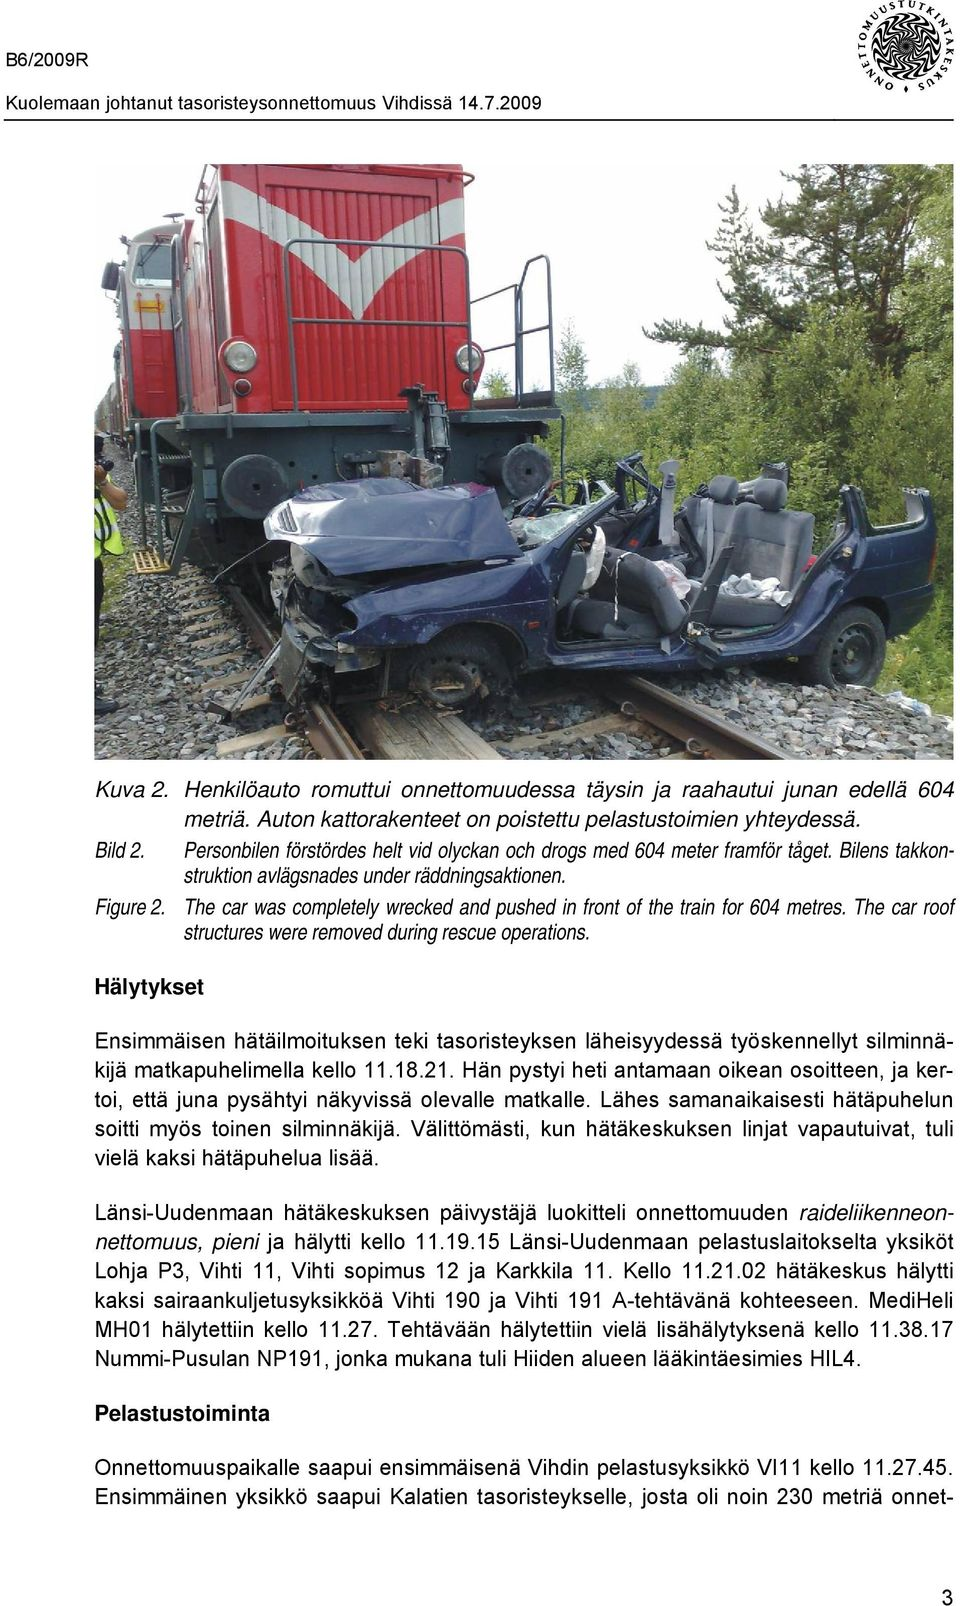 The car was completely wrecked and pushed in front of the train for 604 metres. The car roof structures were removed during rescue operations.